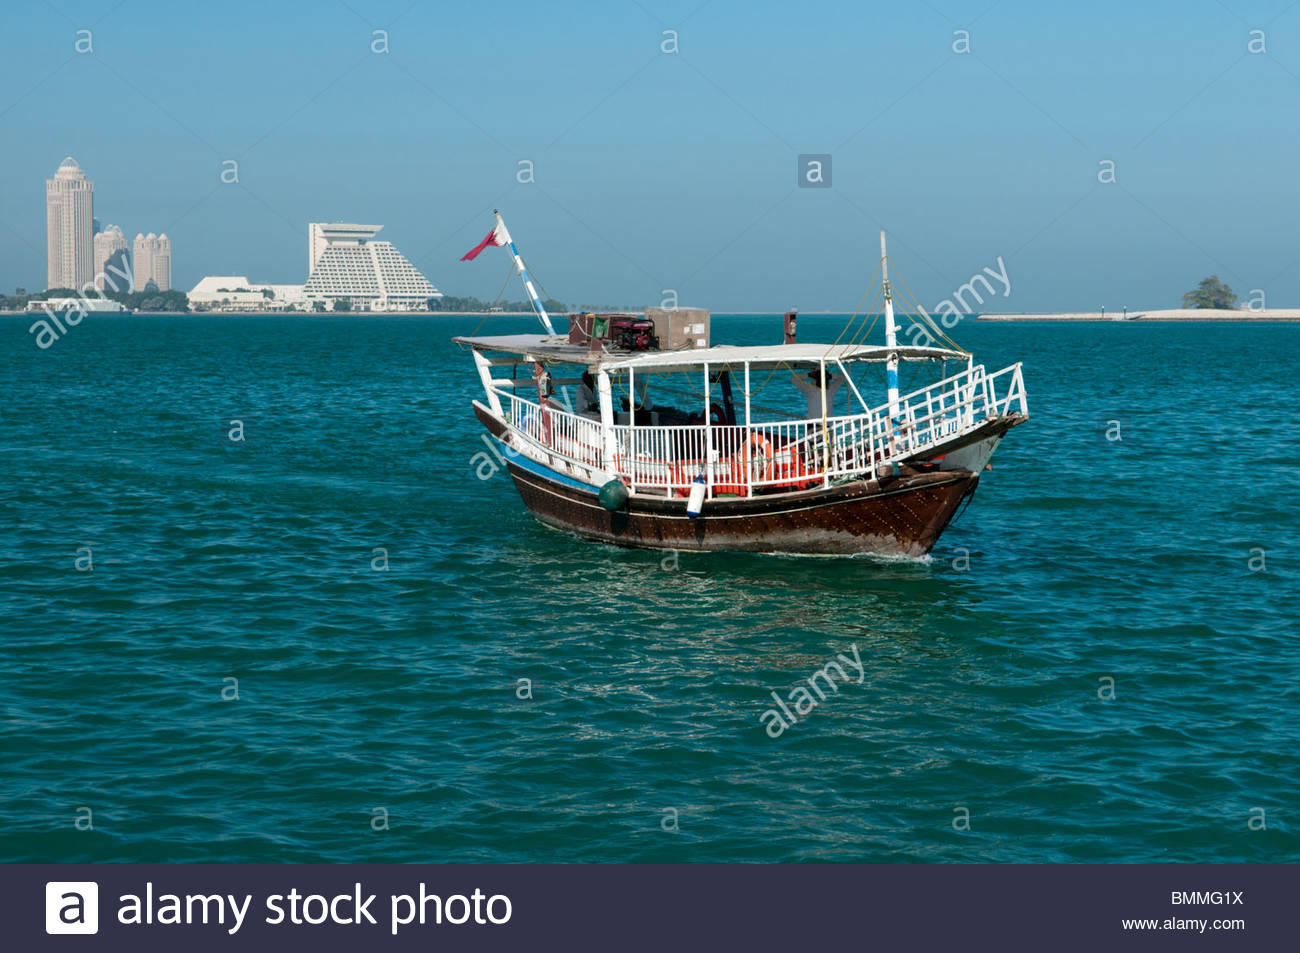 Dhow boat in Doha Qatar with Qtel Tower and Sheraton Hotel in 1300x953